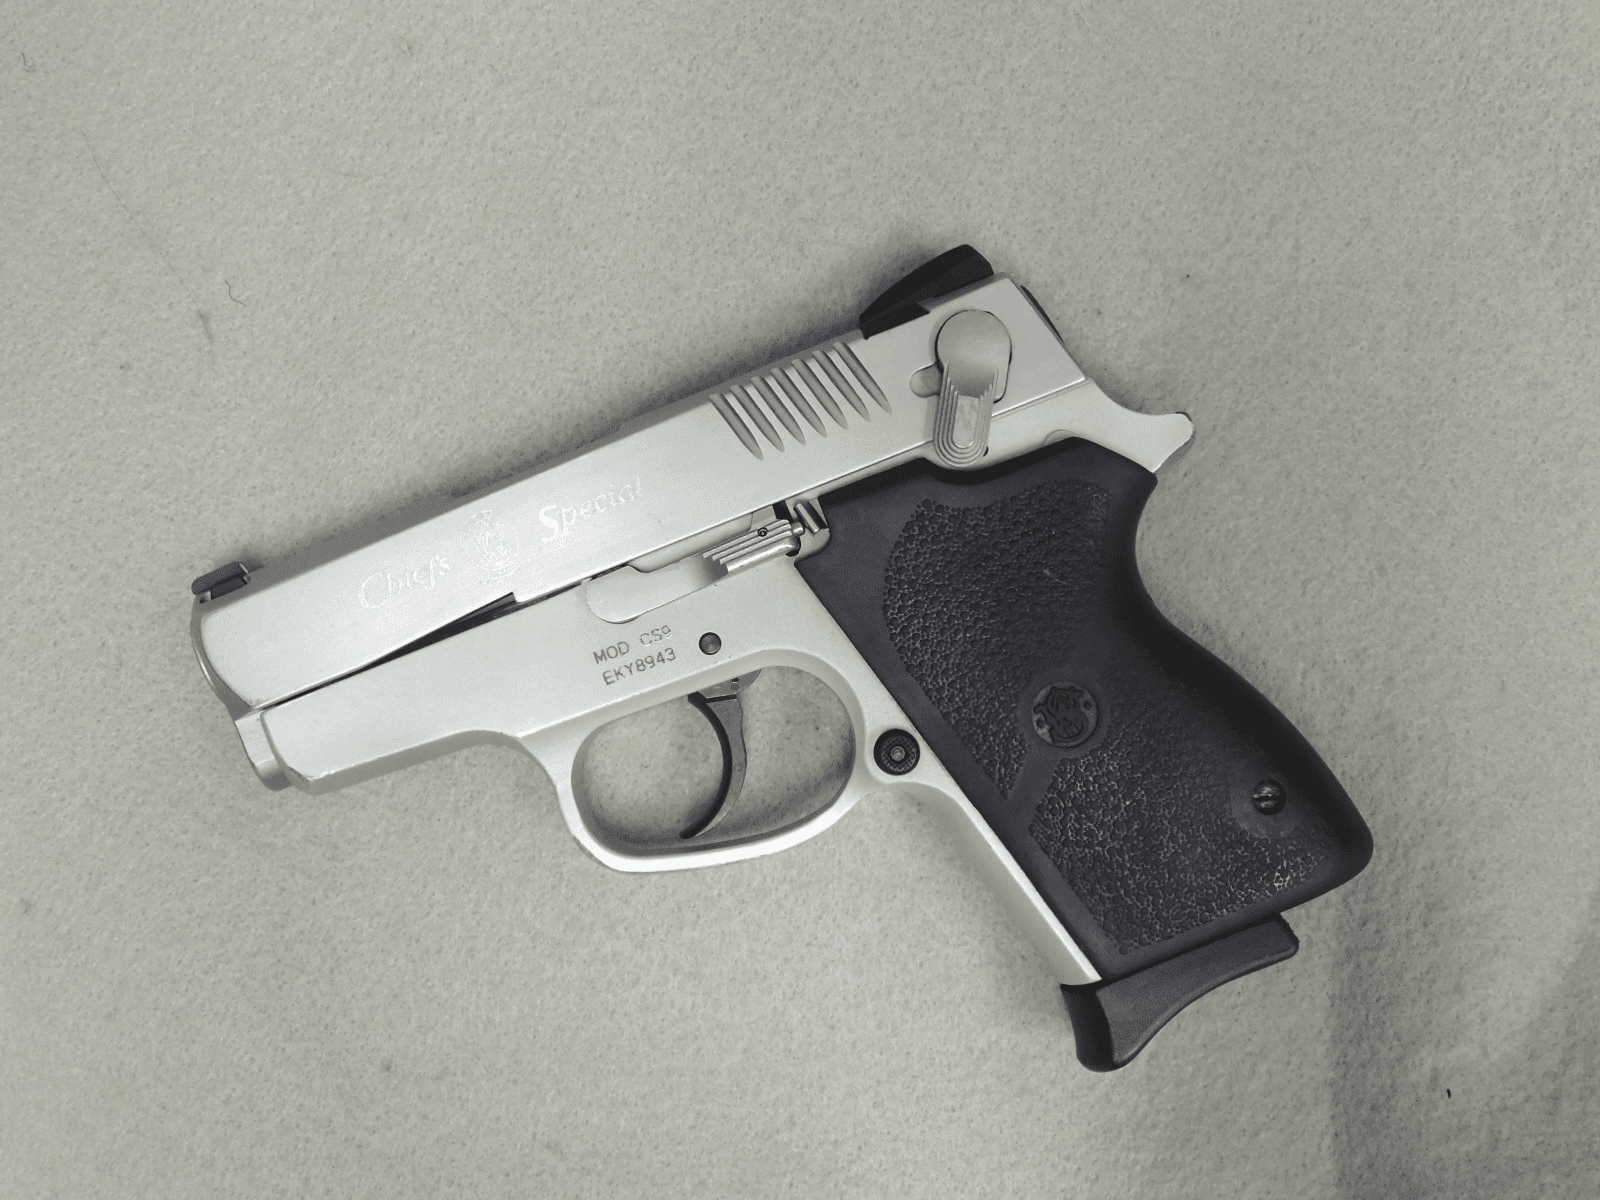 Smith & Wesson CS9 (9mm)